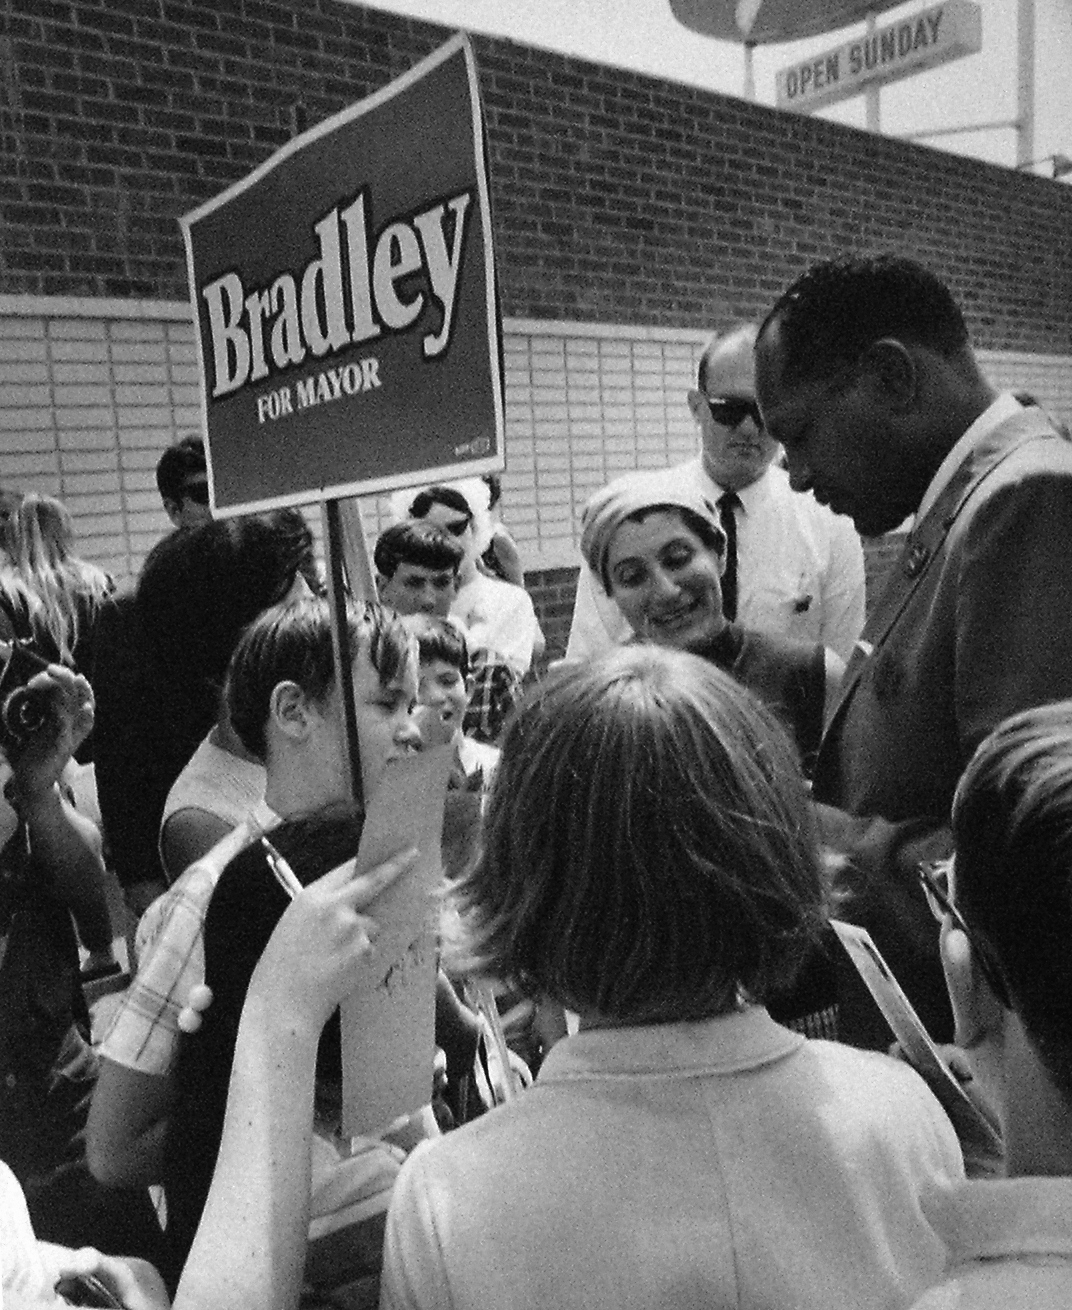 6.-L.A.-City-Councilman-Tom-Bradley-campaigning-for-Los-Angeles-mayor-in-1969---Photo-credit-to-the-Tom-Bradley-Family-copy.png